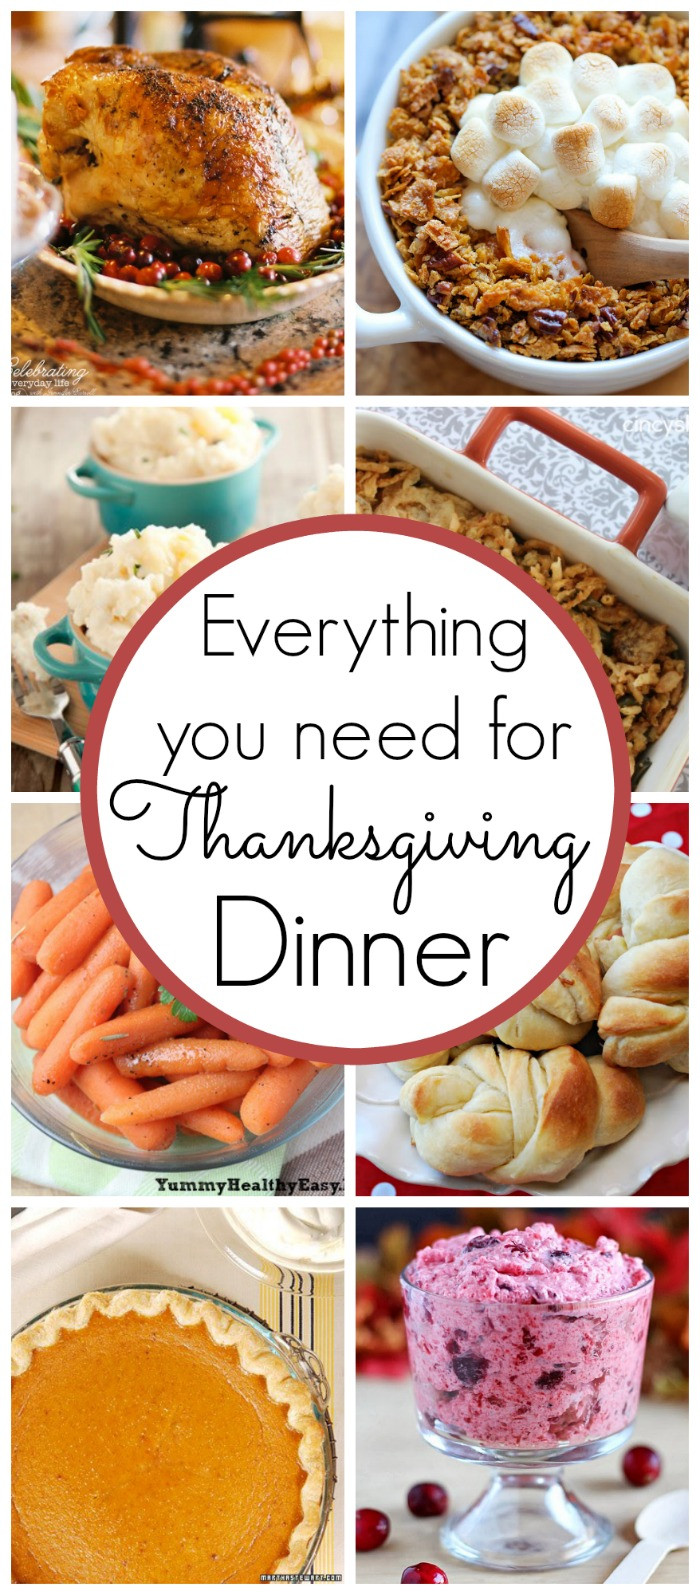 Thanksgiving Dinner Recipes  Thanksgiving Dinner Recipes